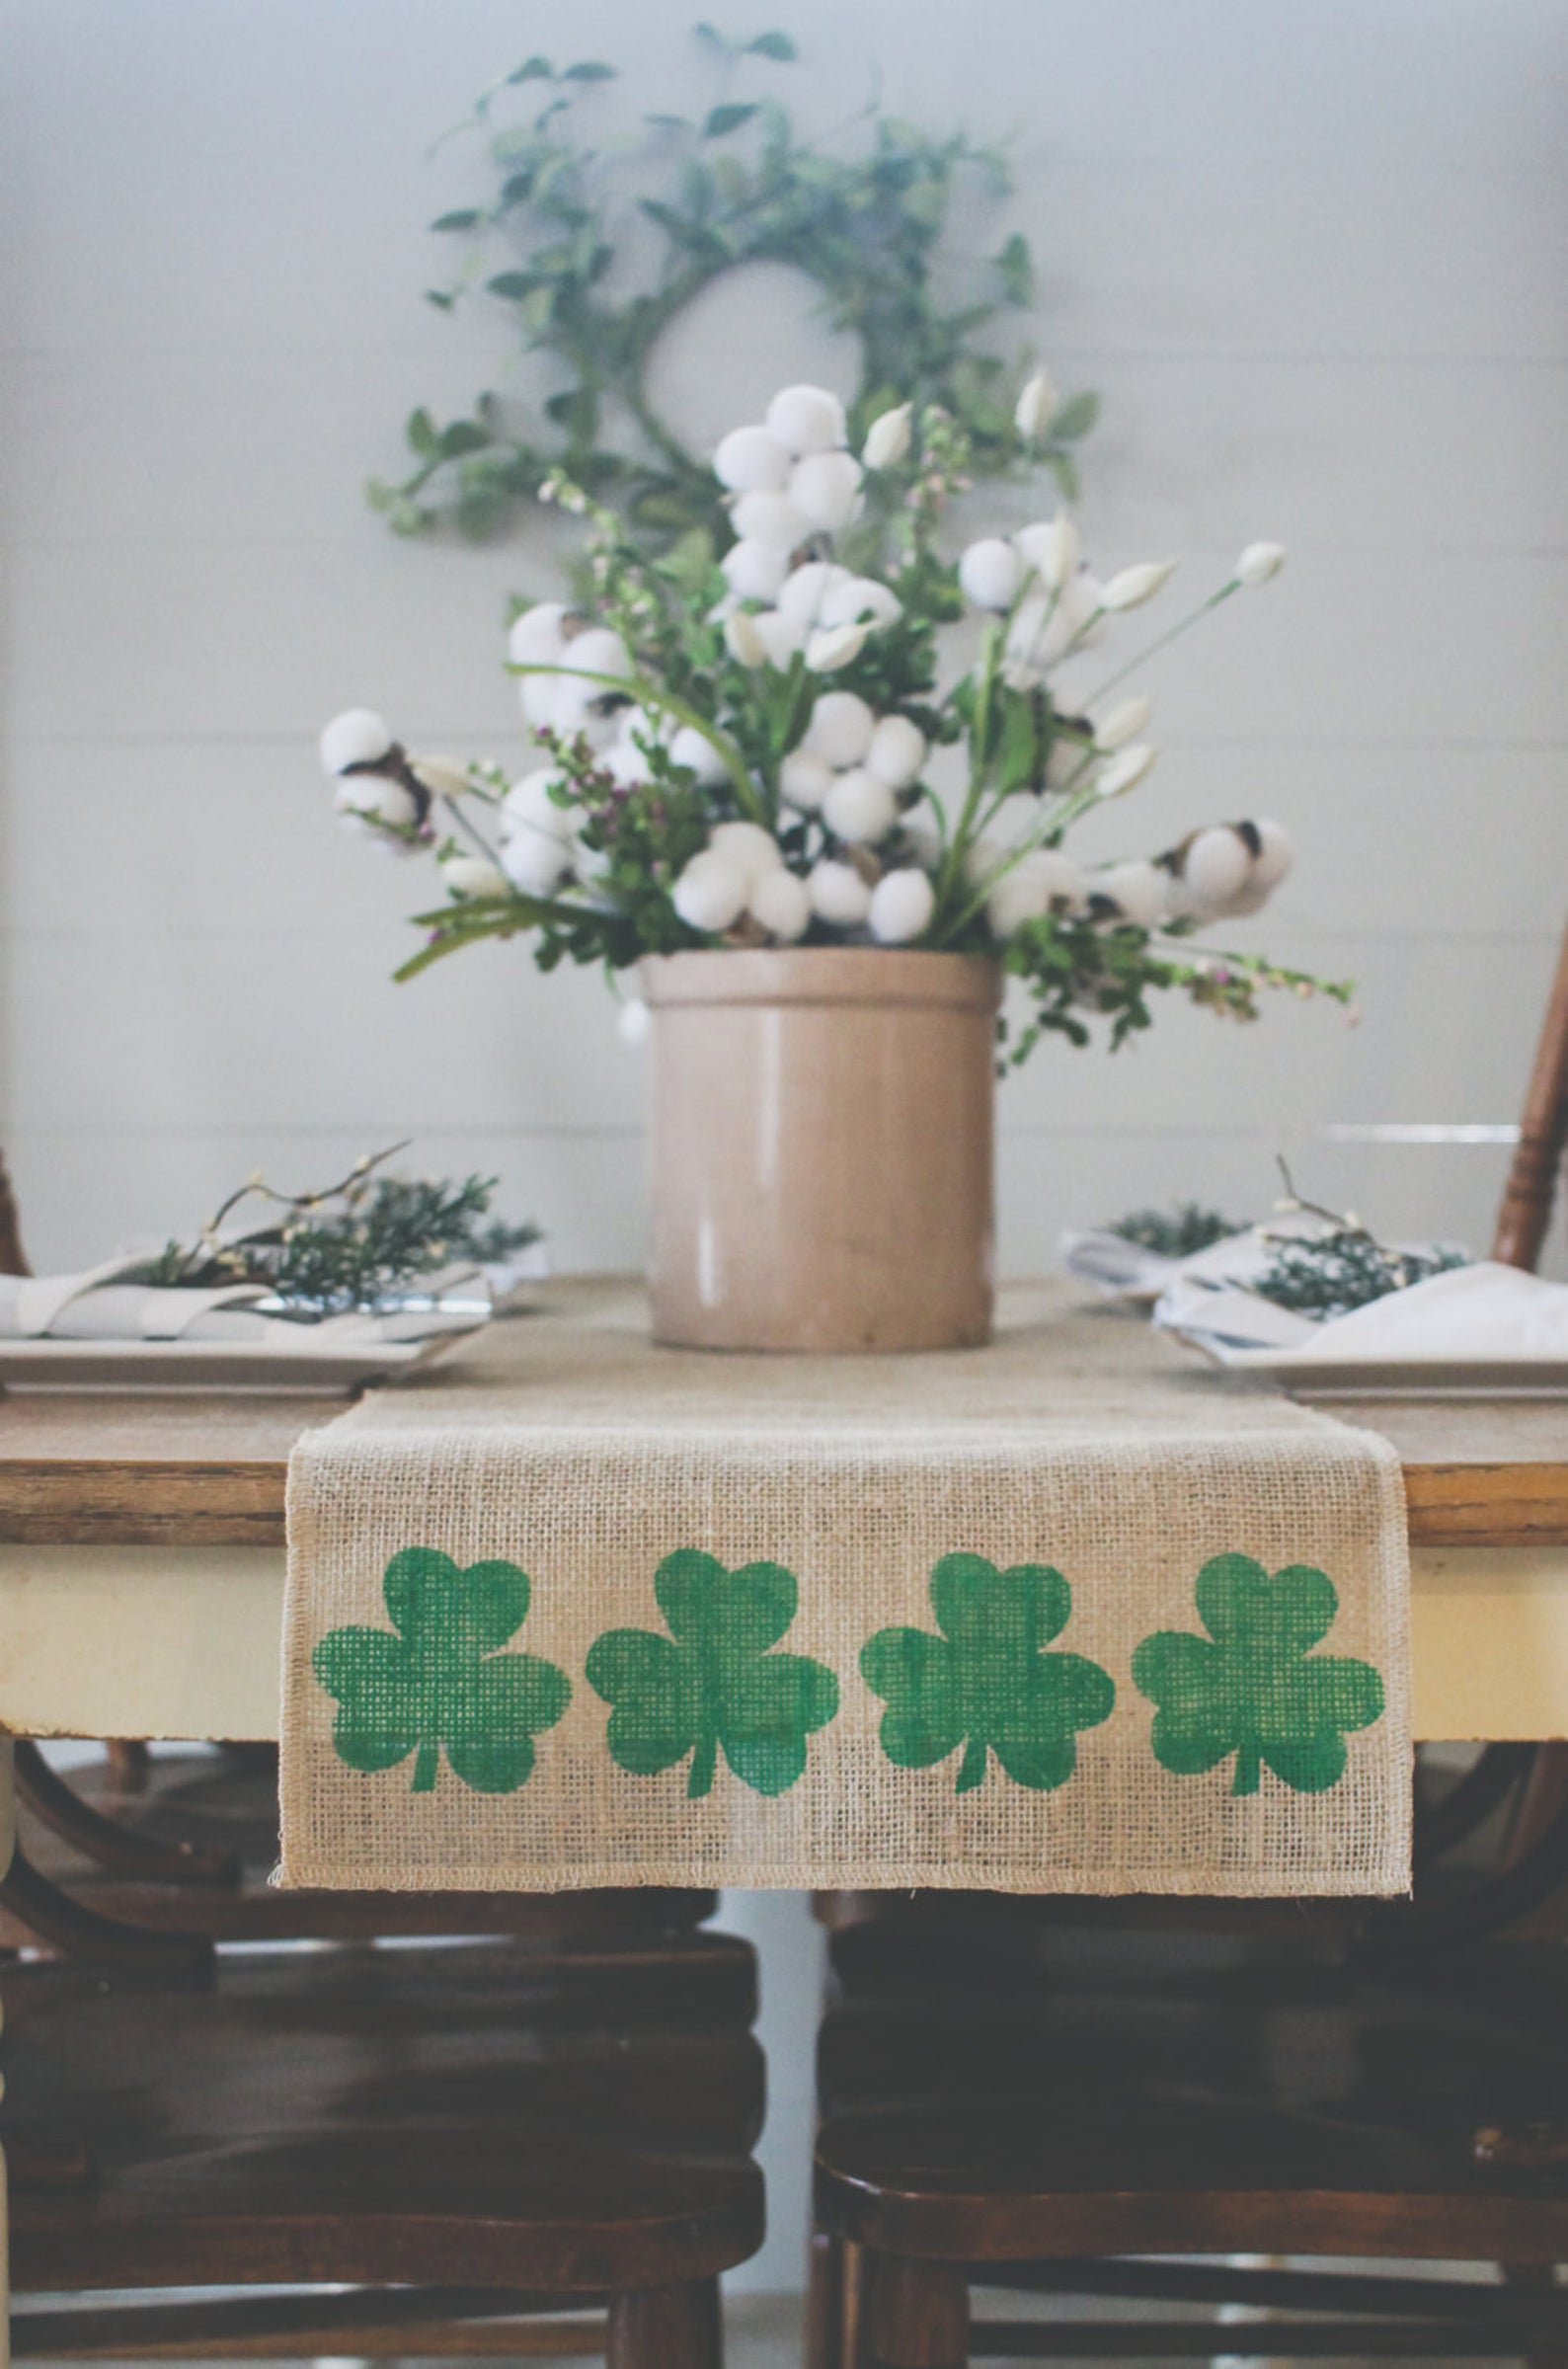 Decoration ideas for St. Patrick & # 39; s Day - table runner for St. Patrick & # 39; s Day